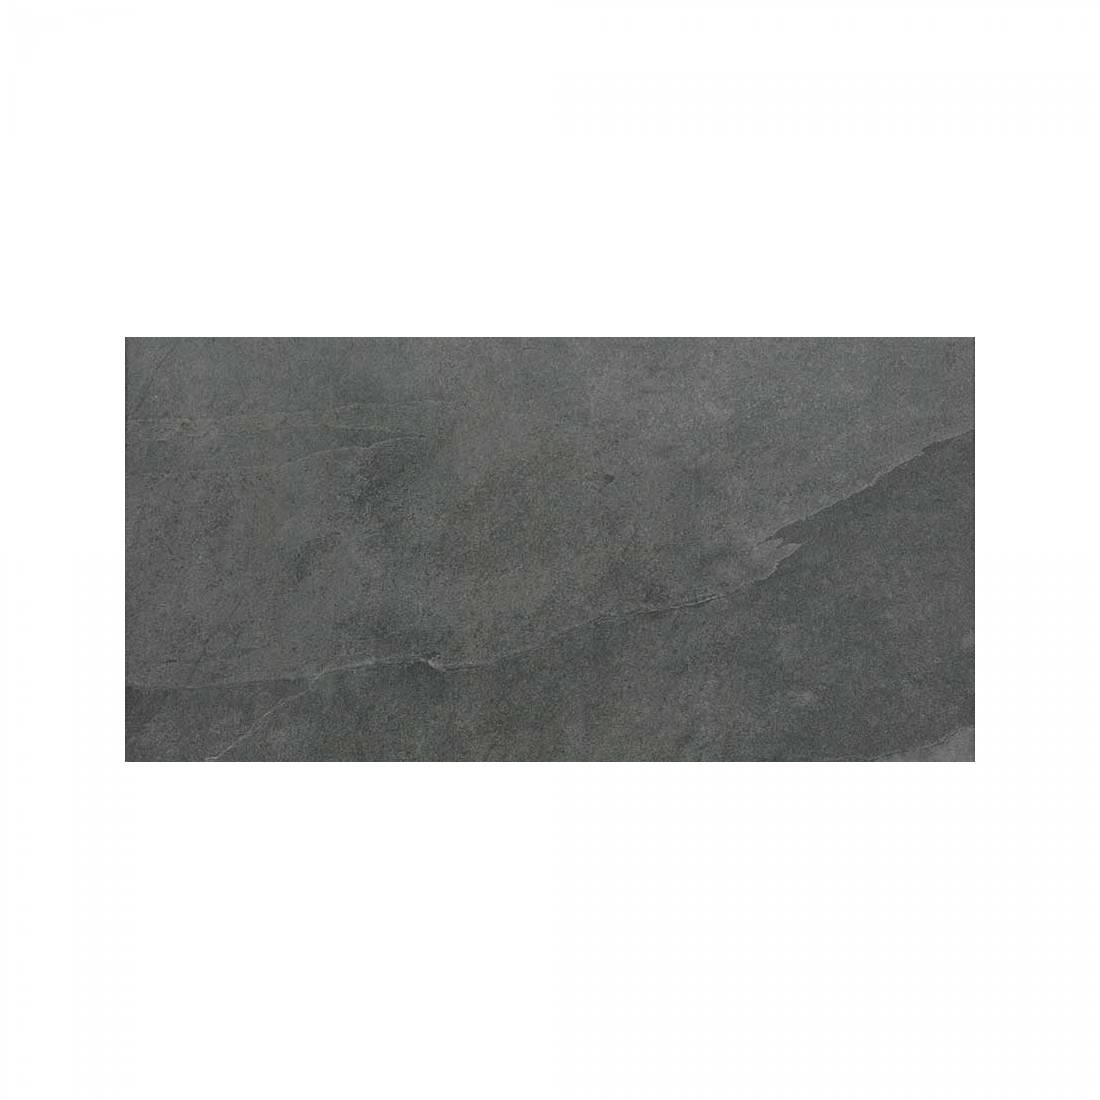 Lajedo 30x60 Black Matt R11 1